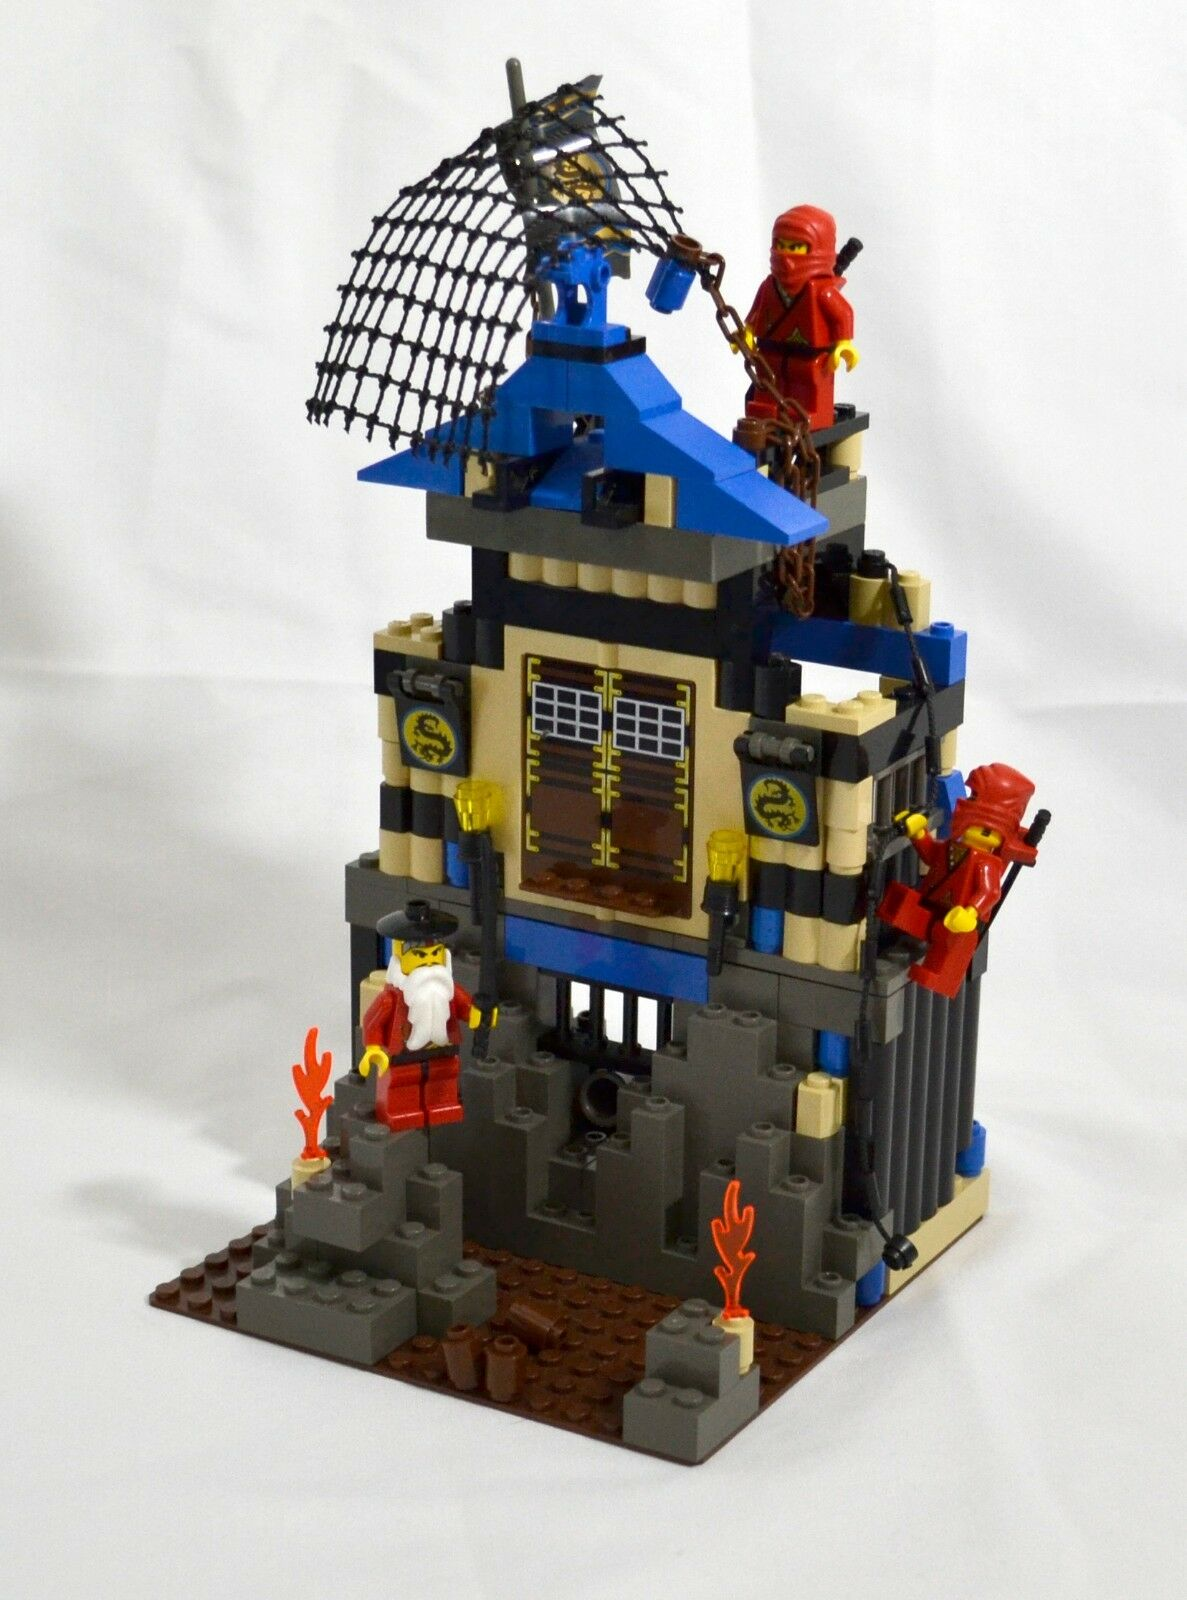 3052 Ninja's Fire Fortress - LEGO Set - Free Shipping - 100% Complete